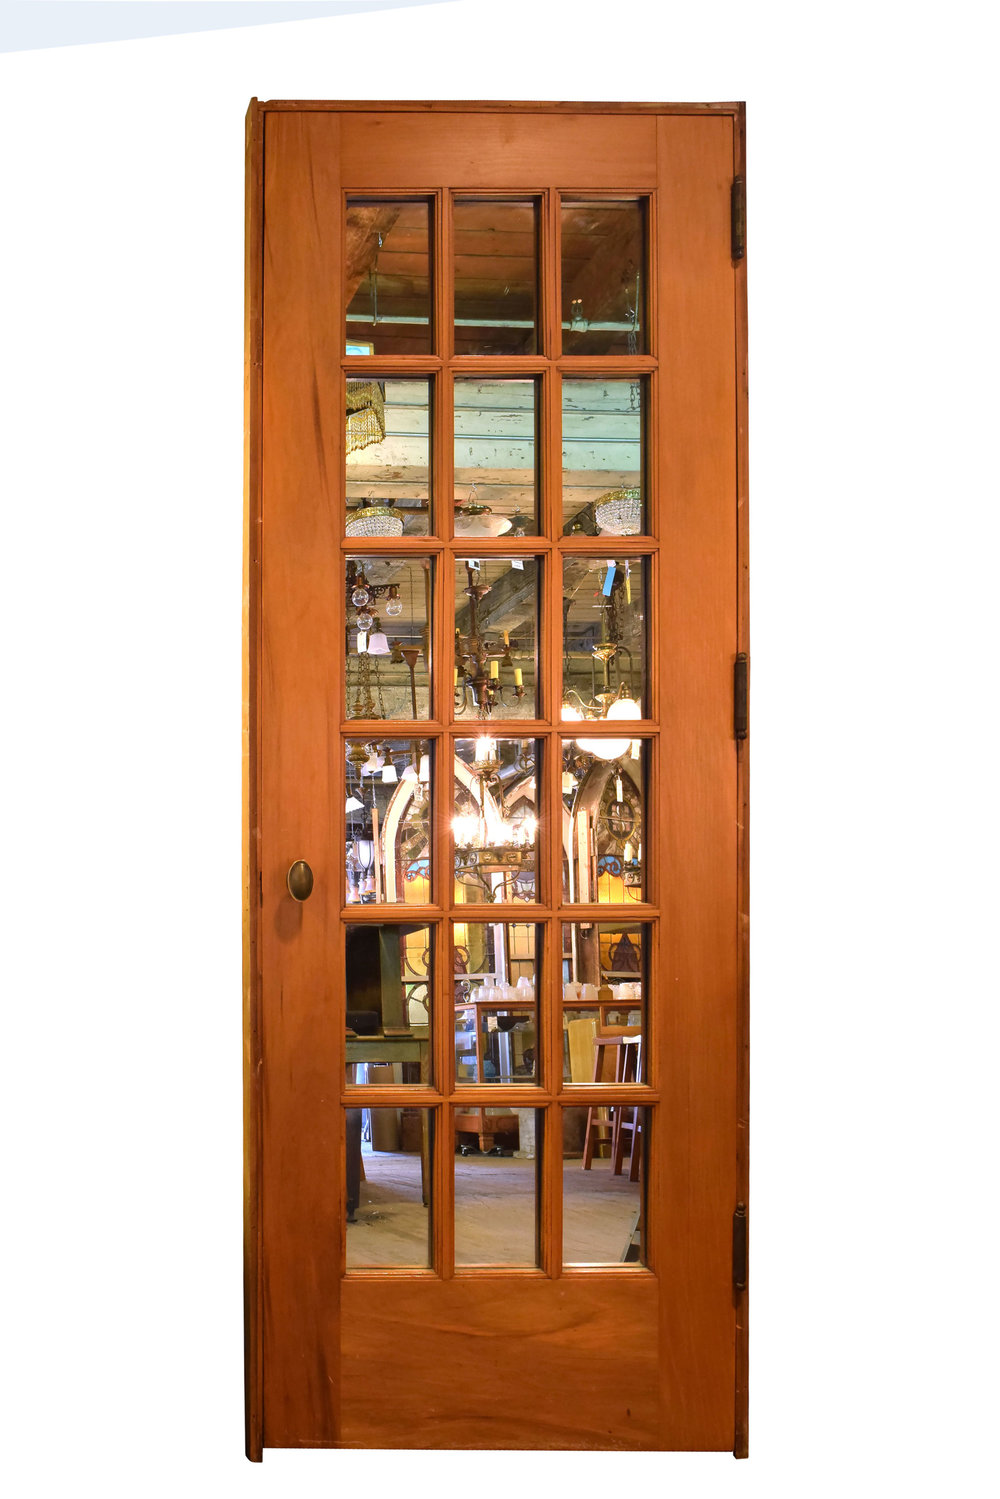 47090-mirrored-french-door-front-view.jpg